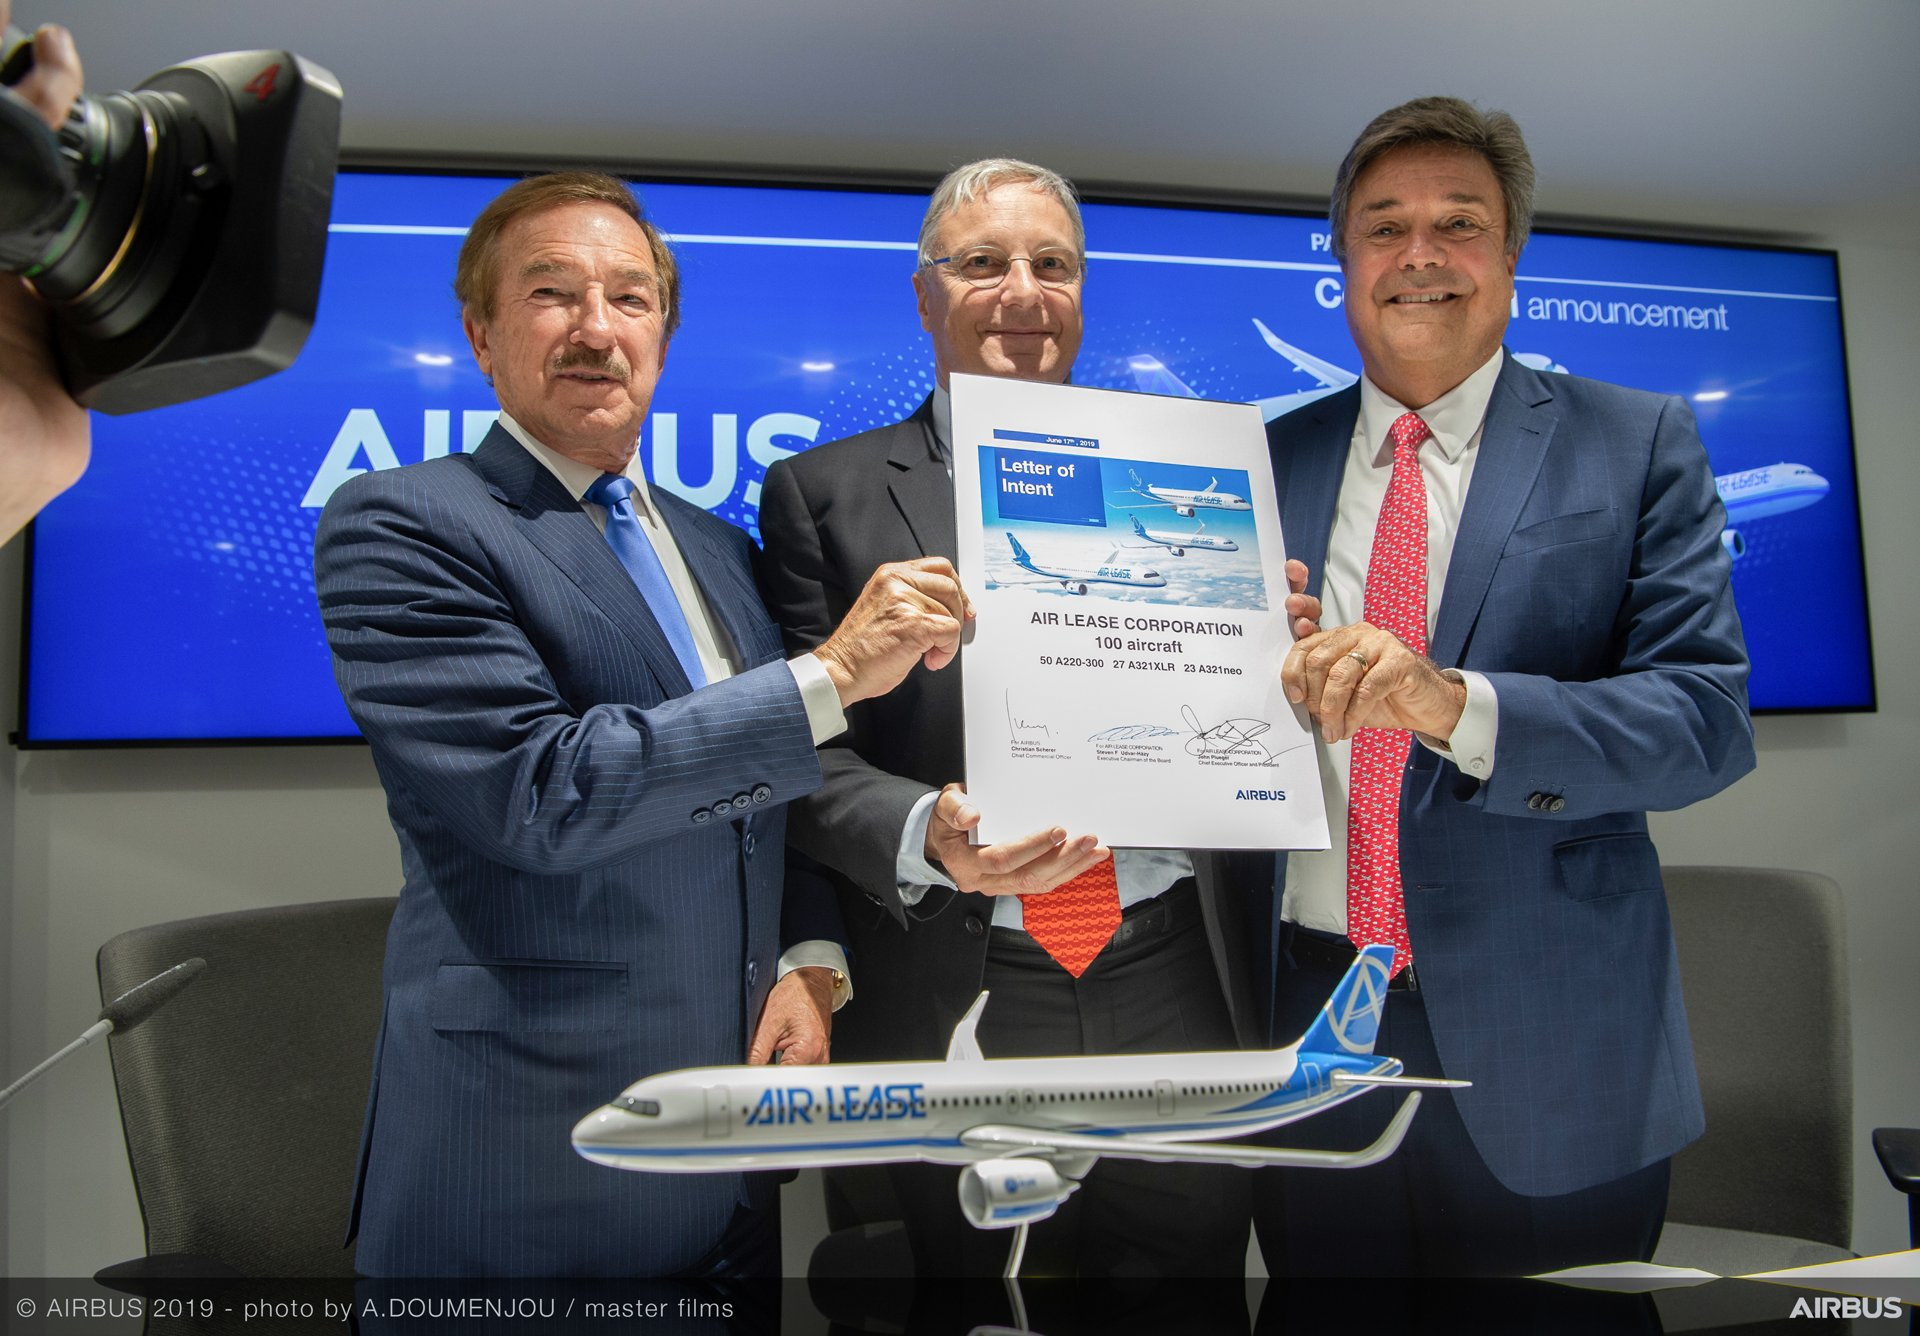 Air Lease Corporation's Letter of Intent for 100 Airbus aircraft – comprised of 50 A220-300s, 27 A321XLRs and 23 A321neos – is marked at the 2019 Paris Air Show by (from left to right): Steven F. Udvar-Házy, Air Lease Corporation Executive Chairman of the Board; Airbus Chief Commercial Officer Christian Scherer; and John Plueger, Air Lease Corporation CEO and President